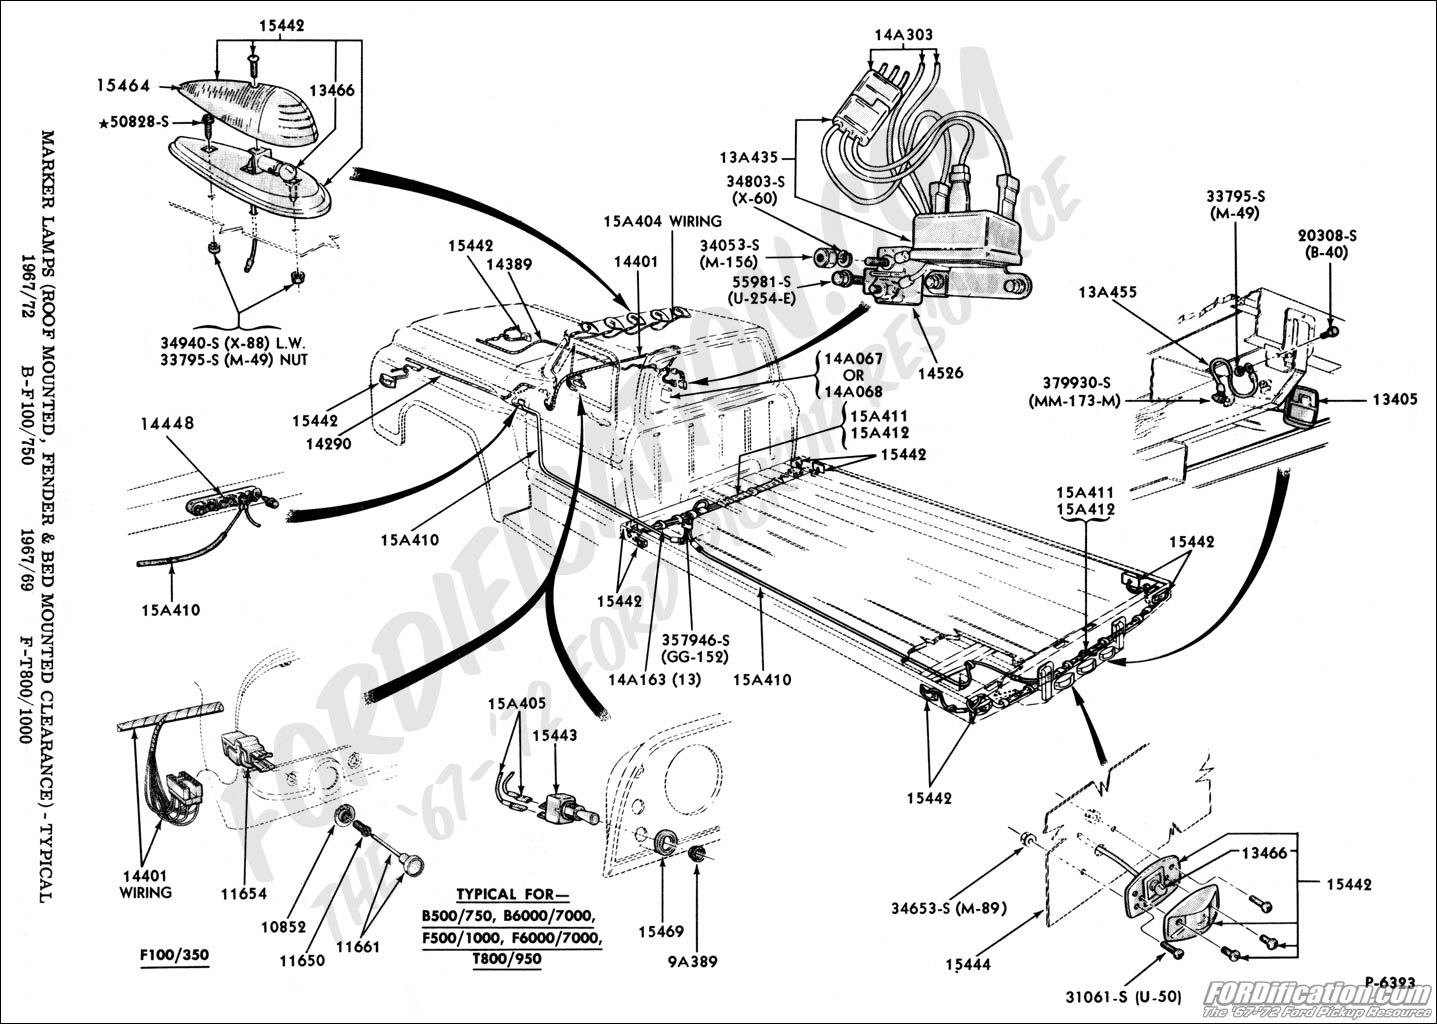 1972 ford f250 wiring diagram how to design uml diagrams cab cleareance lights truck enthusiasts forums